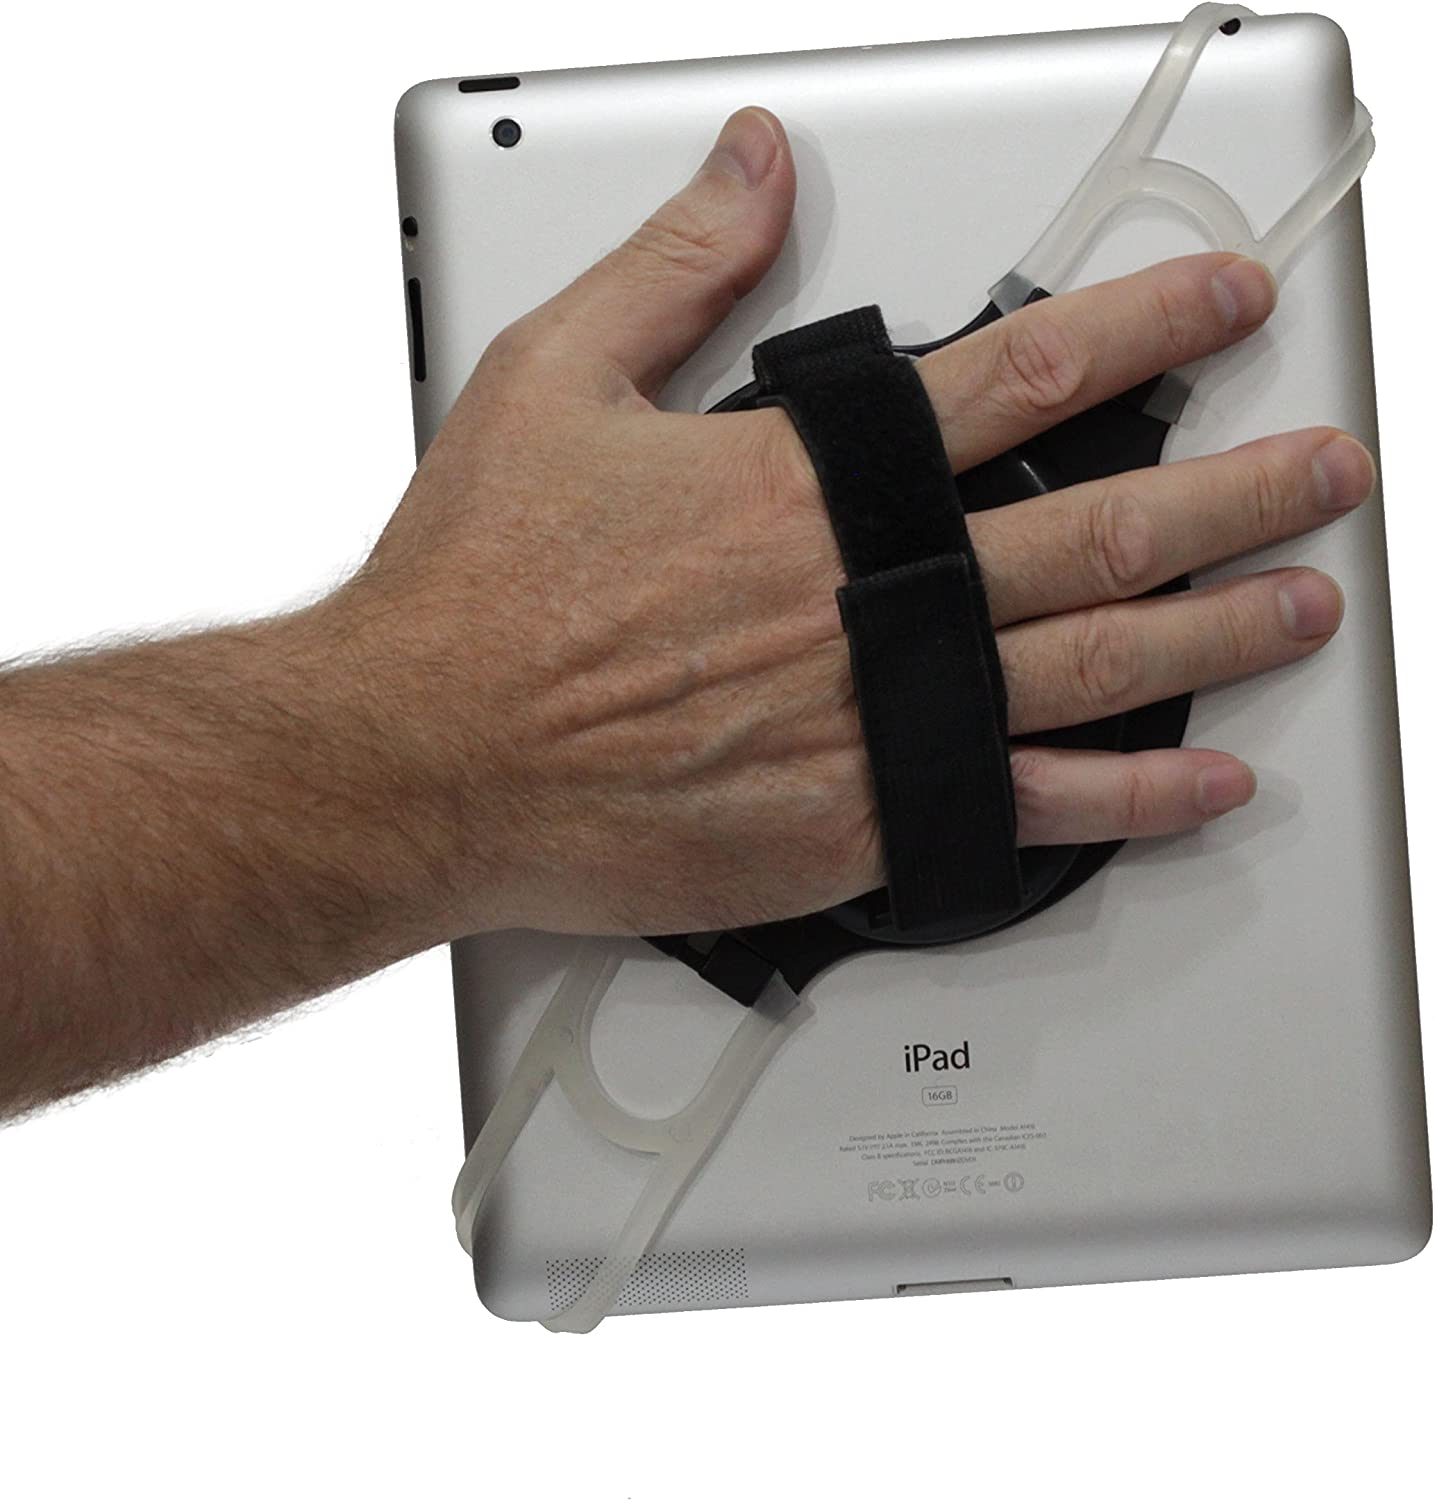 LapWorks Tablet Handler with Adjustable Hand Strap for All 10 inch iPads, iPad Mini and Tablets up to 10.1 inch Including Samsung, Asus, Acer, Google, Lenovo, Kindle and Nook